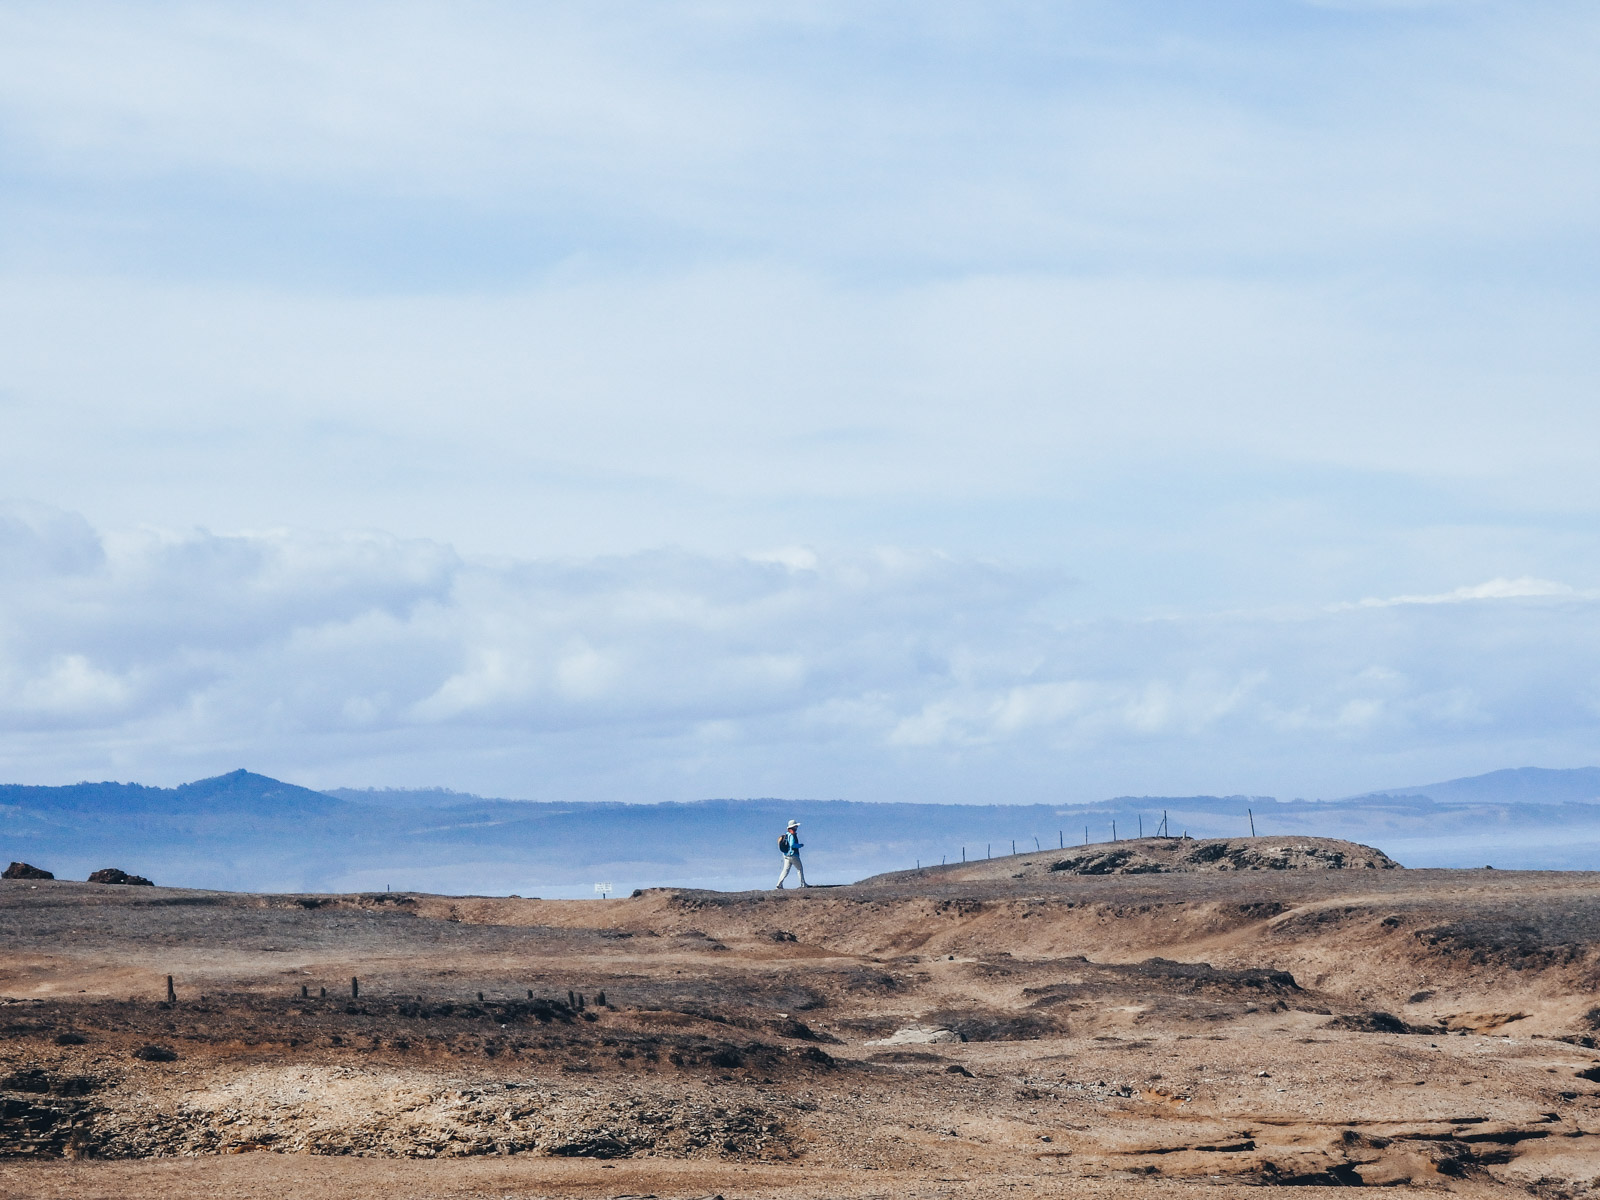 Pichilemu in Chile is a hidden gem to travel. A man walks along the coastline to the beach front in Pichilemu